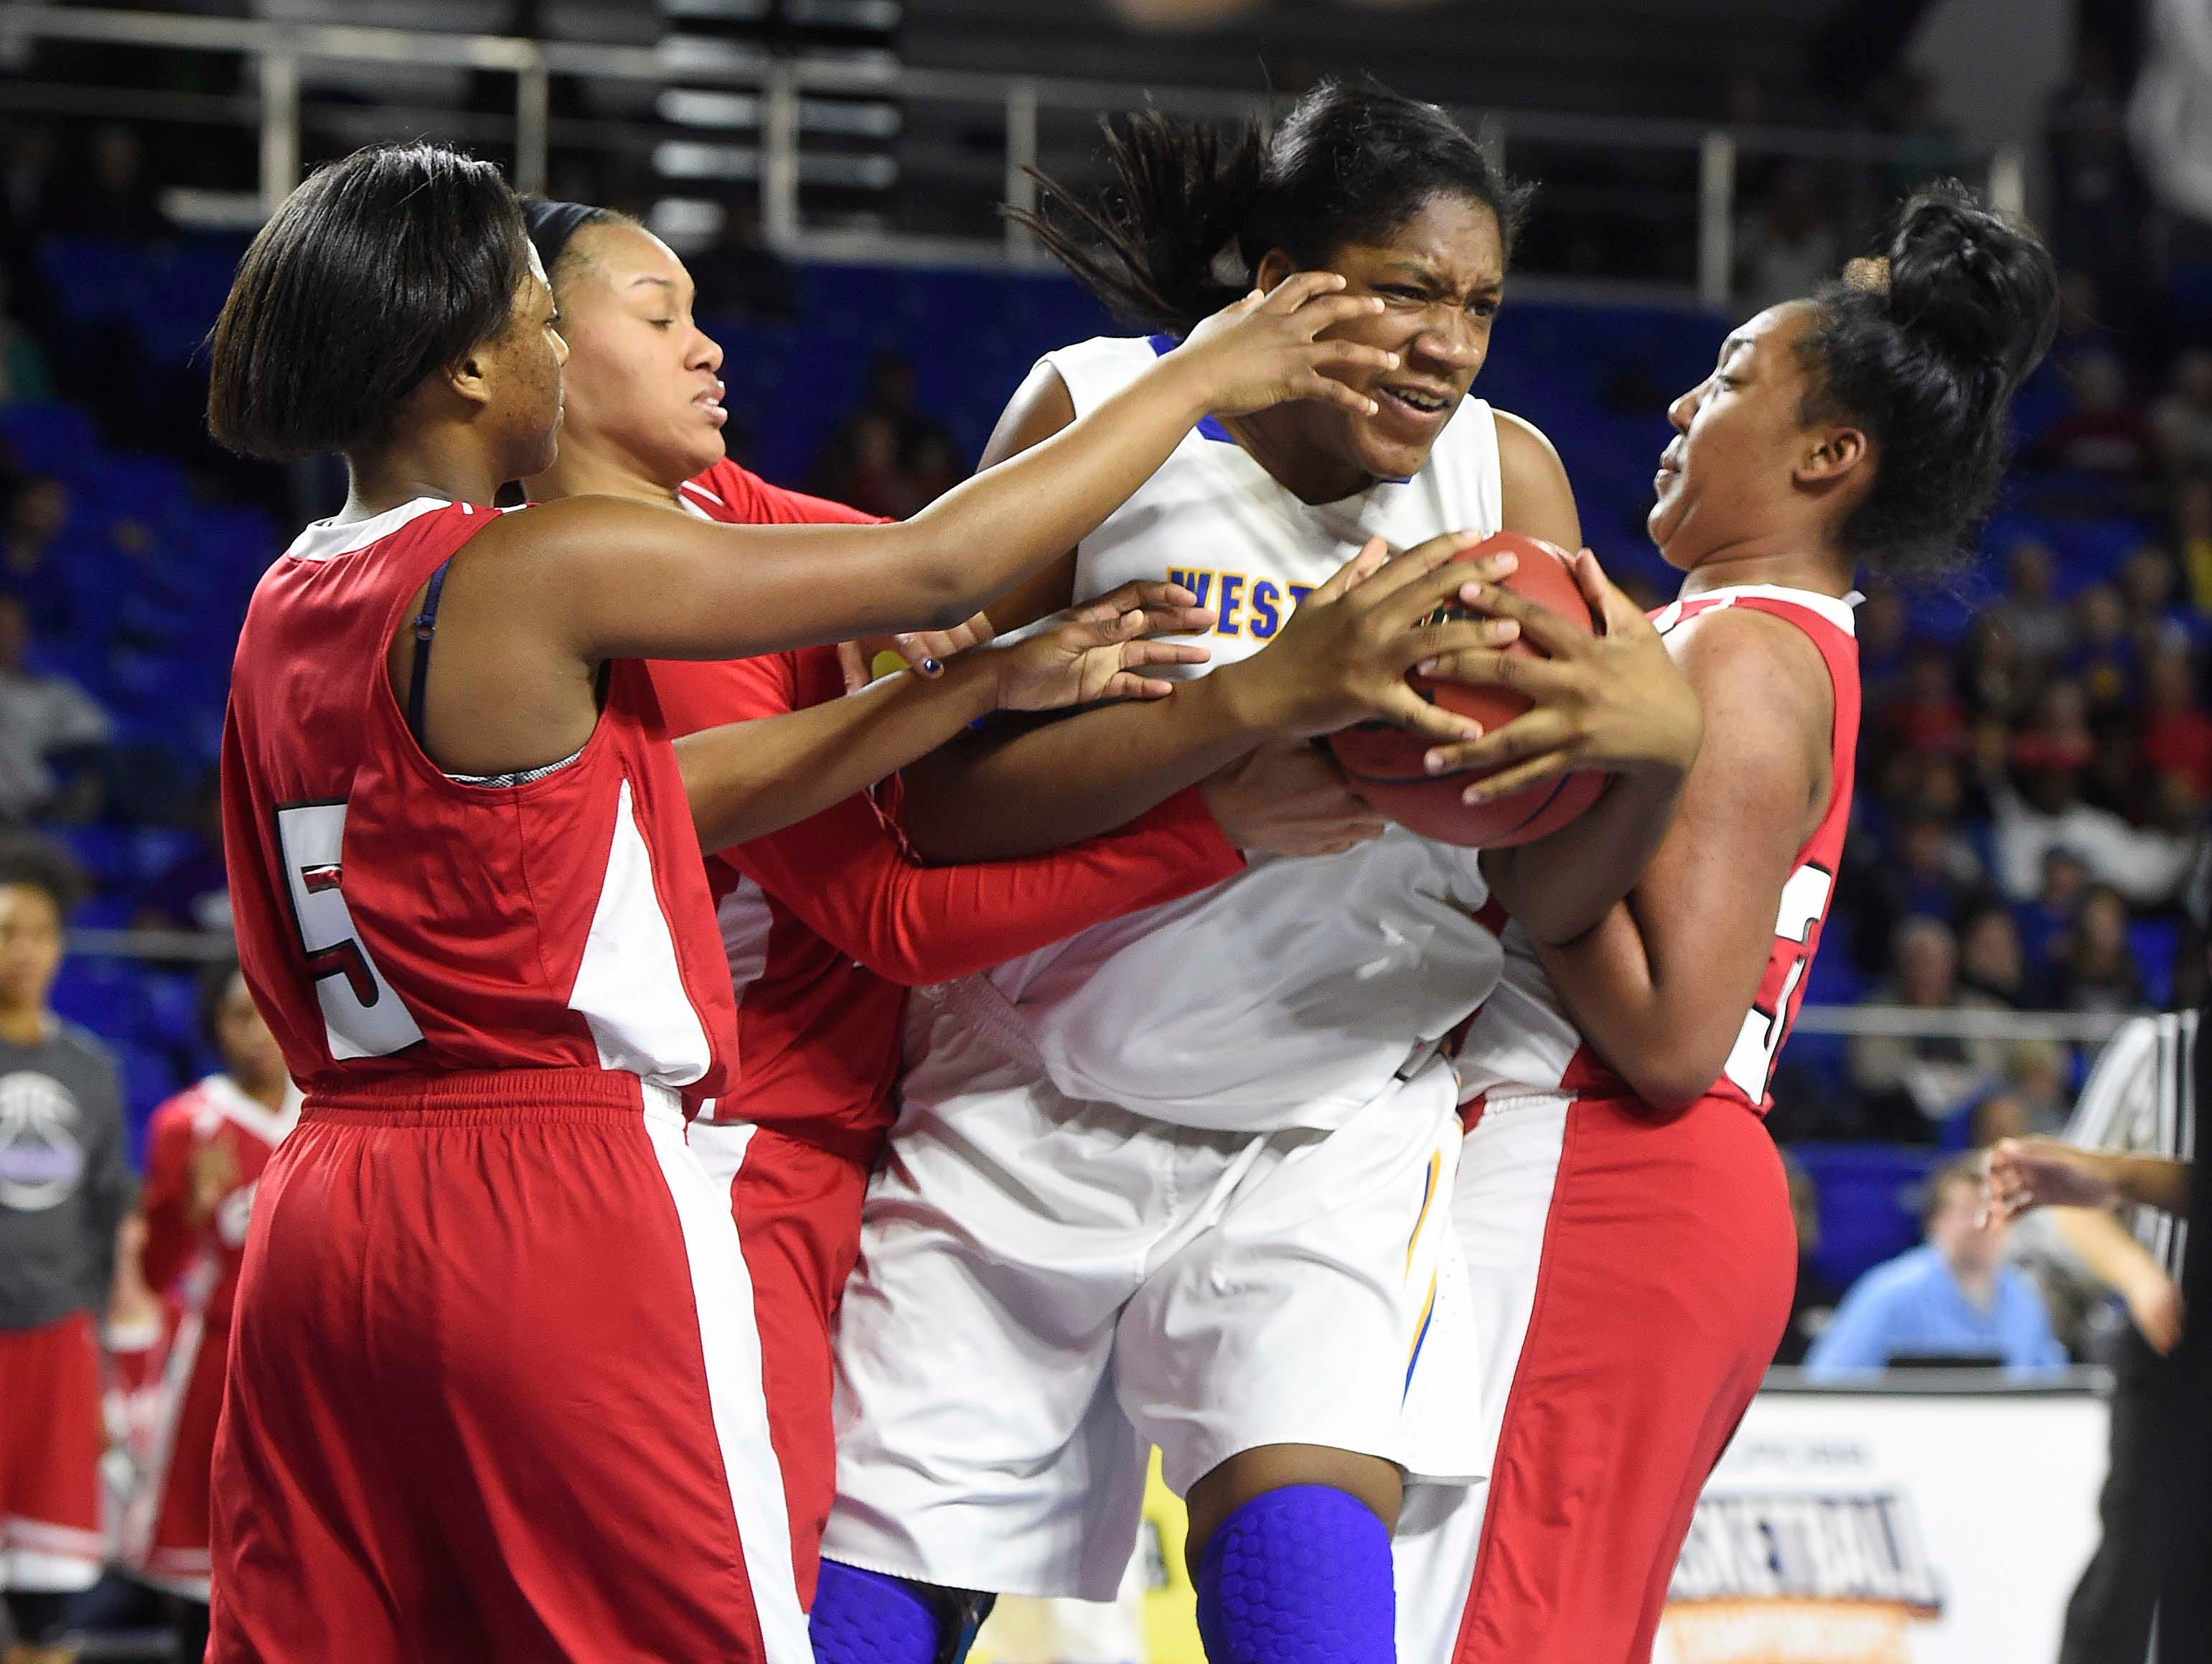 Westview's Deja Graves (55) fights for the ball against several East players as East Nashville wins over Westview High School 35-32 in the Division I Class AA Girl's basketball semi-finals at the Murphy Center on MTSU's campus March 11, 2016 in Murfreesboro, Tenn.